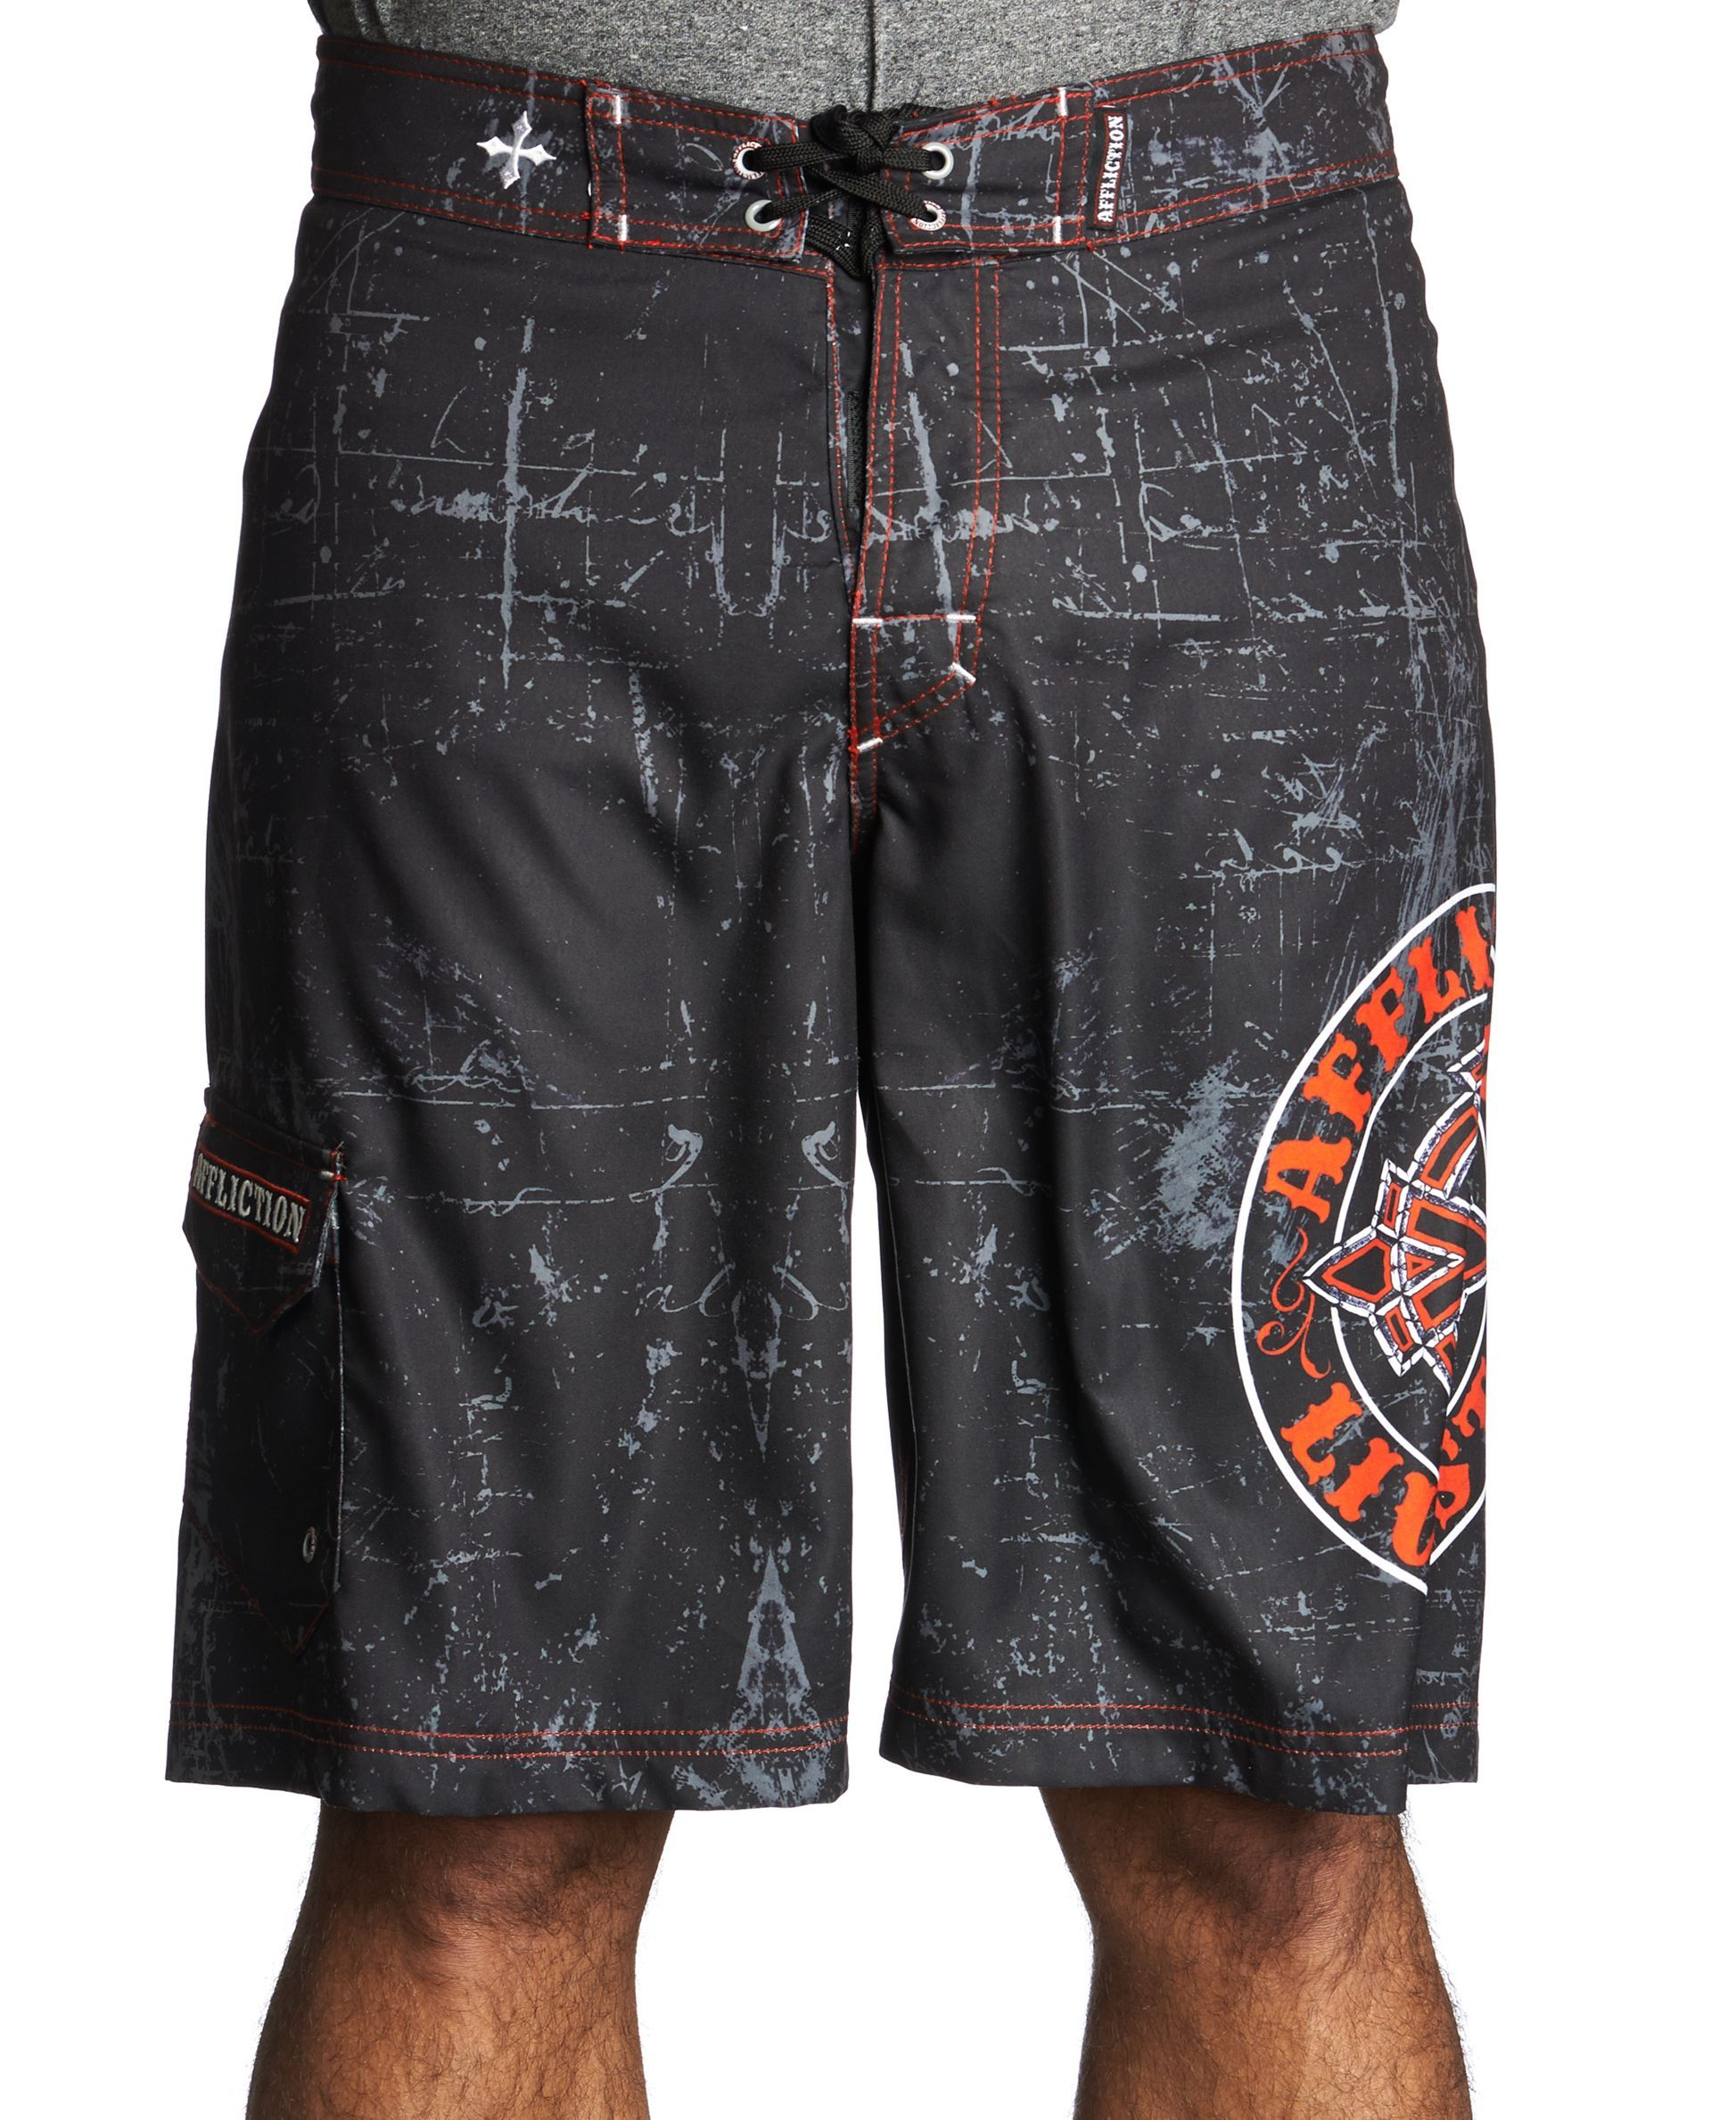 a3189c5ded Affliction Royal Chromatic Board Shorts Mens Boardshorts, Shorts Online,  Swimwear, Swimsuits, Bathing